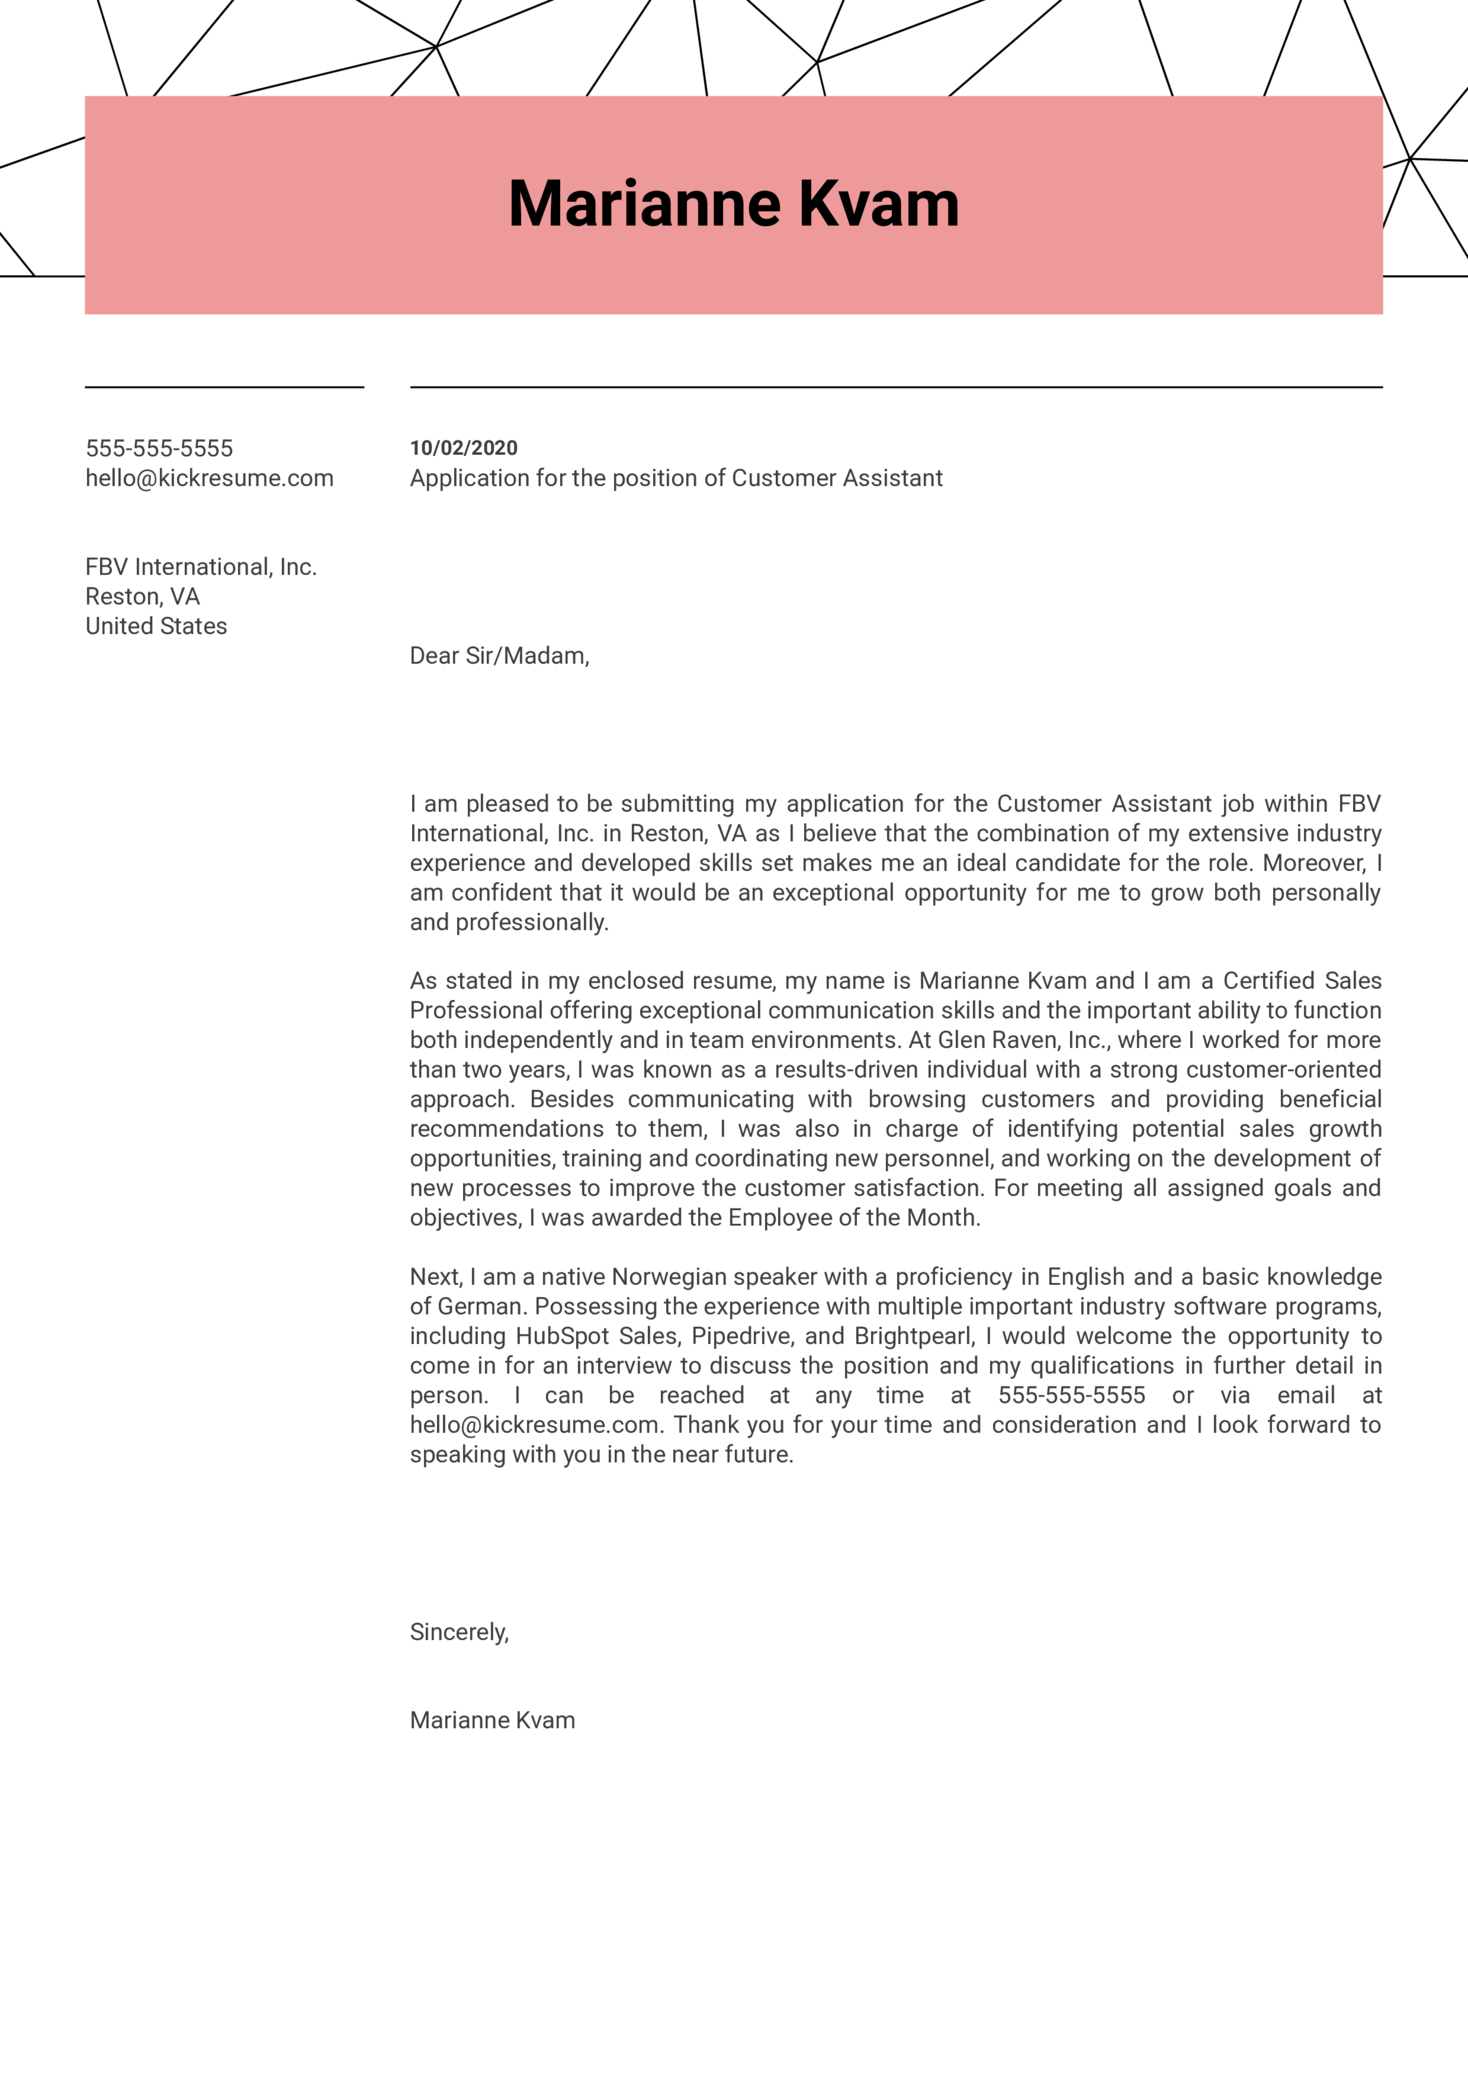 Customer Assistant Cover Letter Example